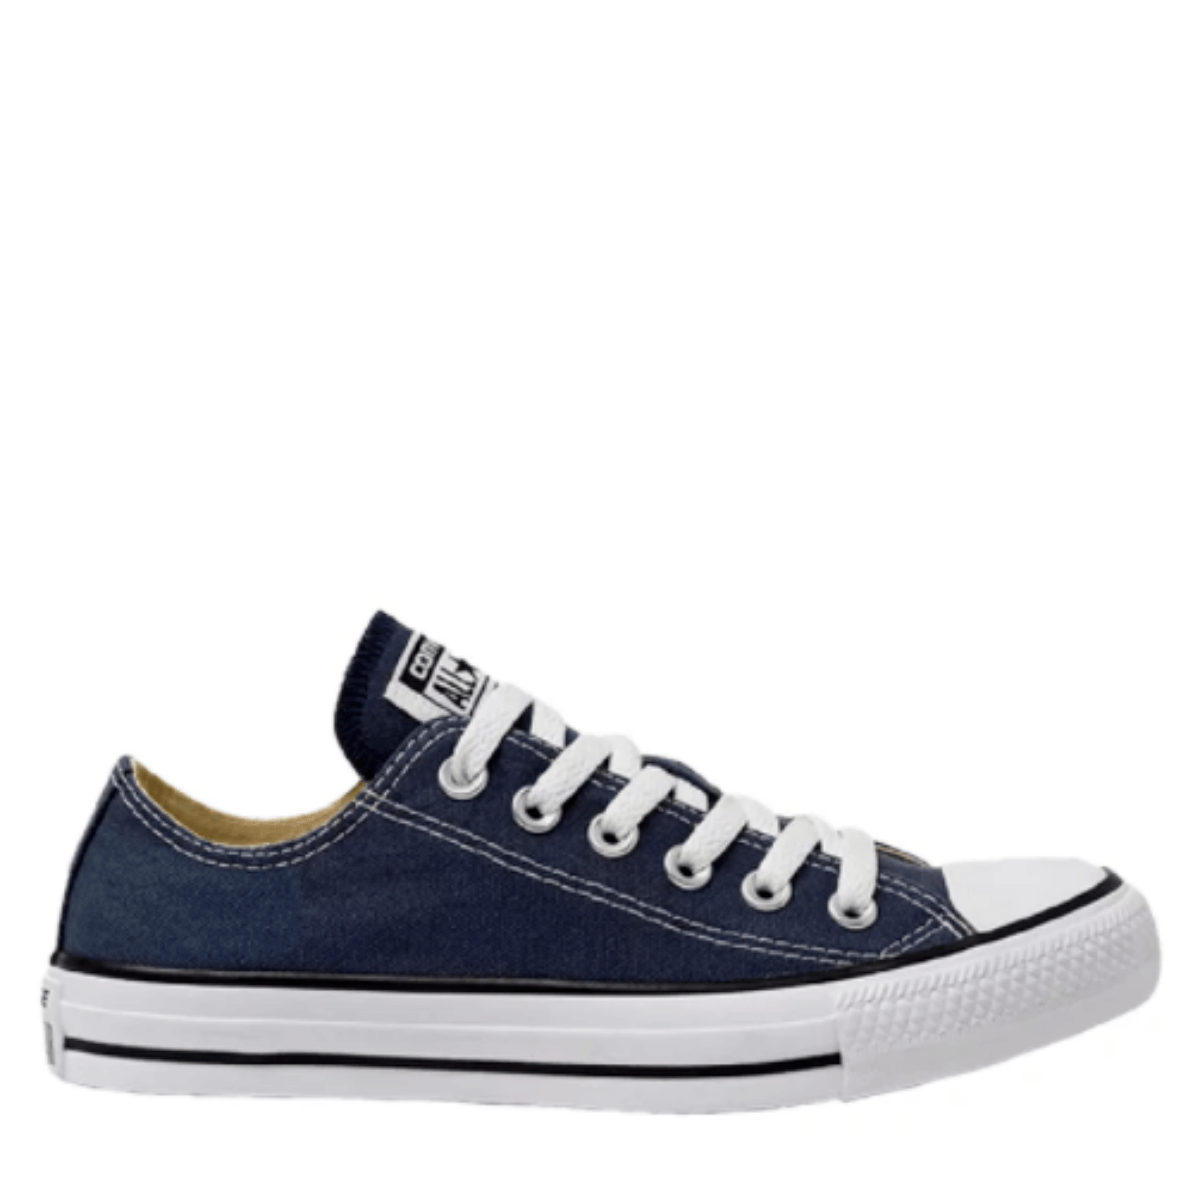 Tênis Converse Chuck Taylor All Star Core Ox Marinho CT00010003